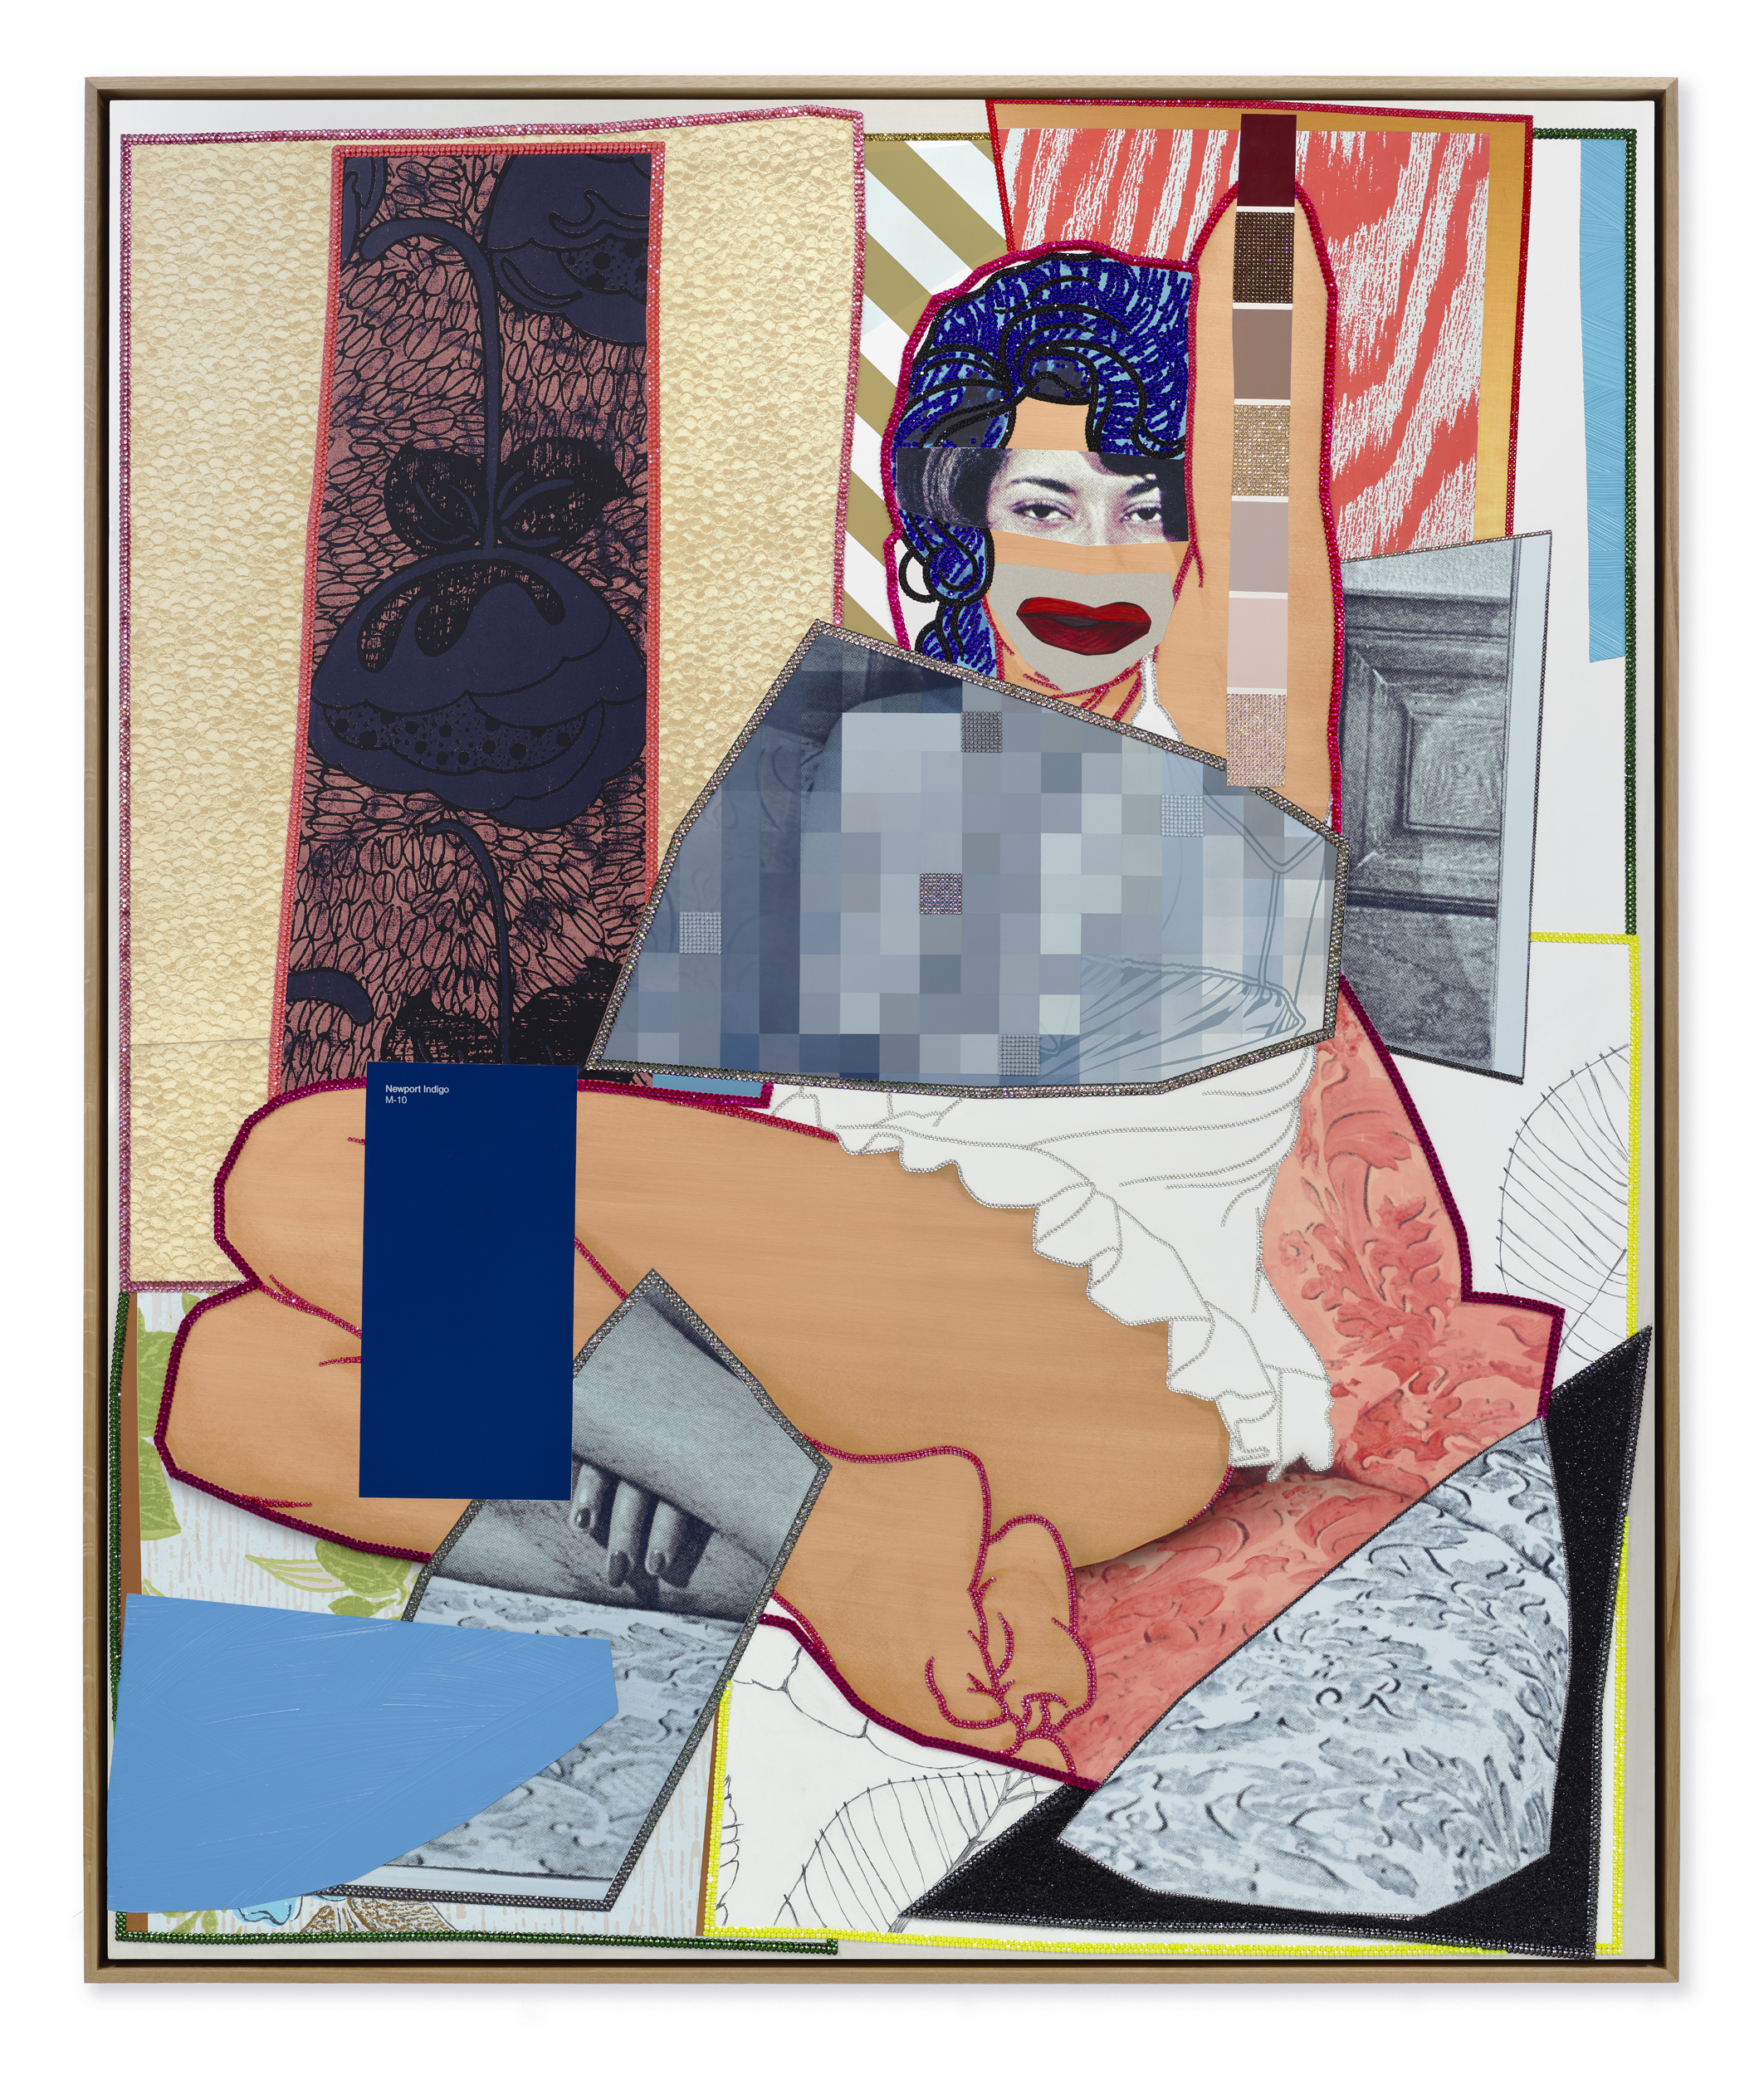 Mickalene Thomas, _August 1975_, 2021. Rhinestones, graphite, glitter, acrylic, and oil on canvas mounted on wood panel with oak frame 86⅛ x 72⅛ inches (218.8 x 183.2 cm). © Mickalene Thomas / Artists Rights Society (ARS), New York.